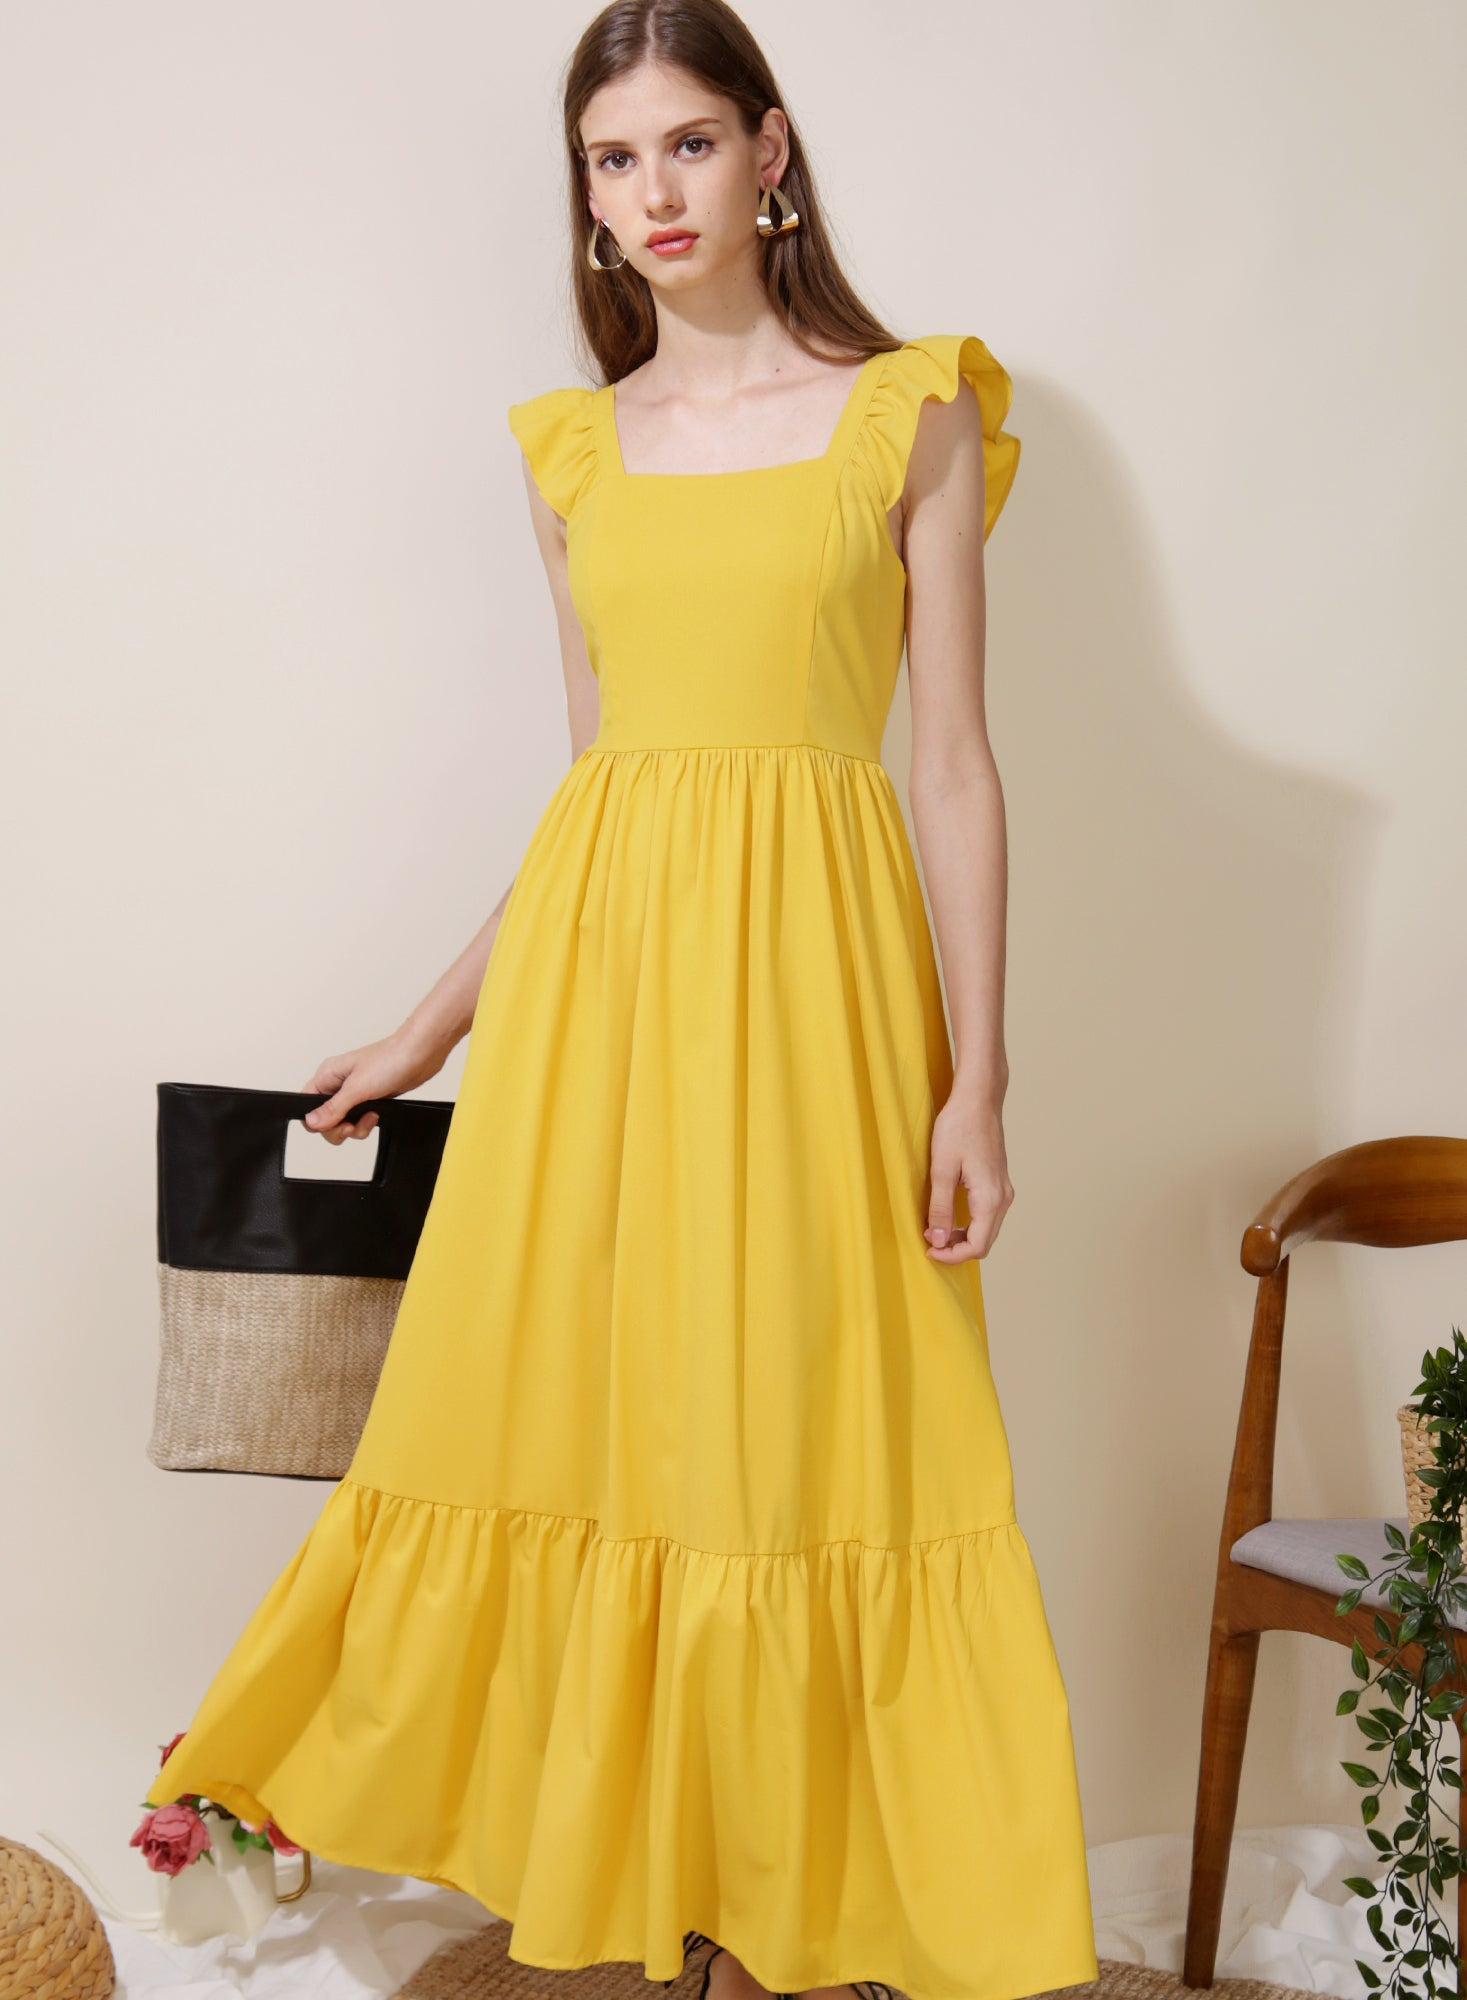 Ceremony Frill Straps Maxi Dress (Lemon) at $ 46.50 only sold at And Well Dressed Online Fashion Store Singapore